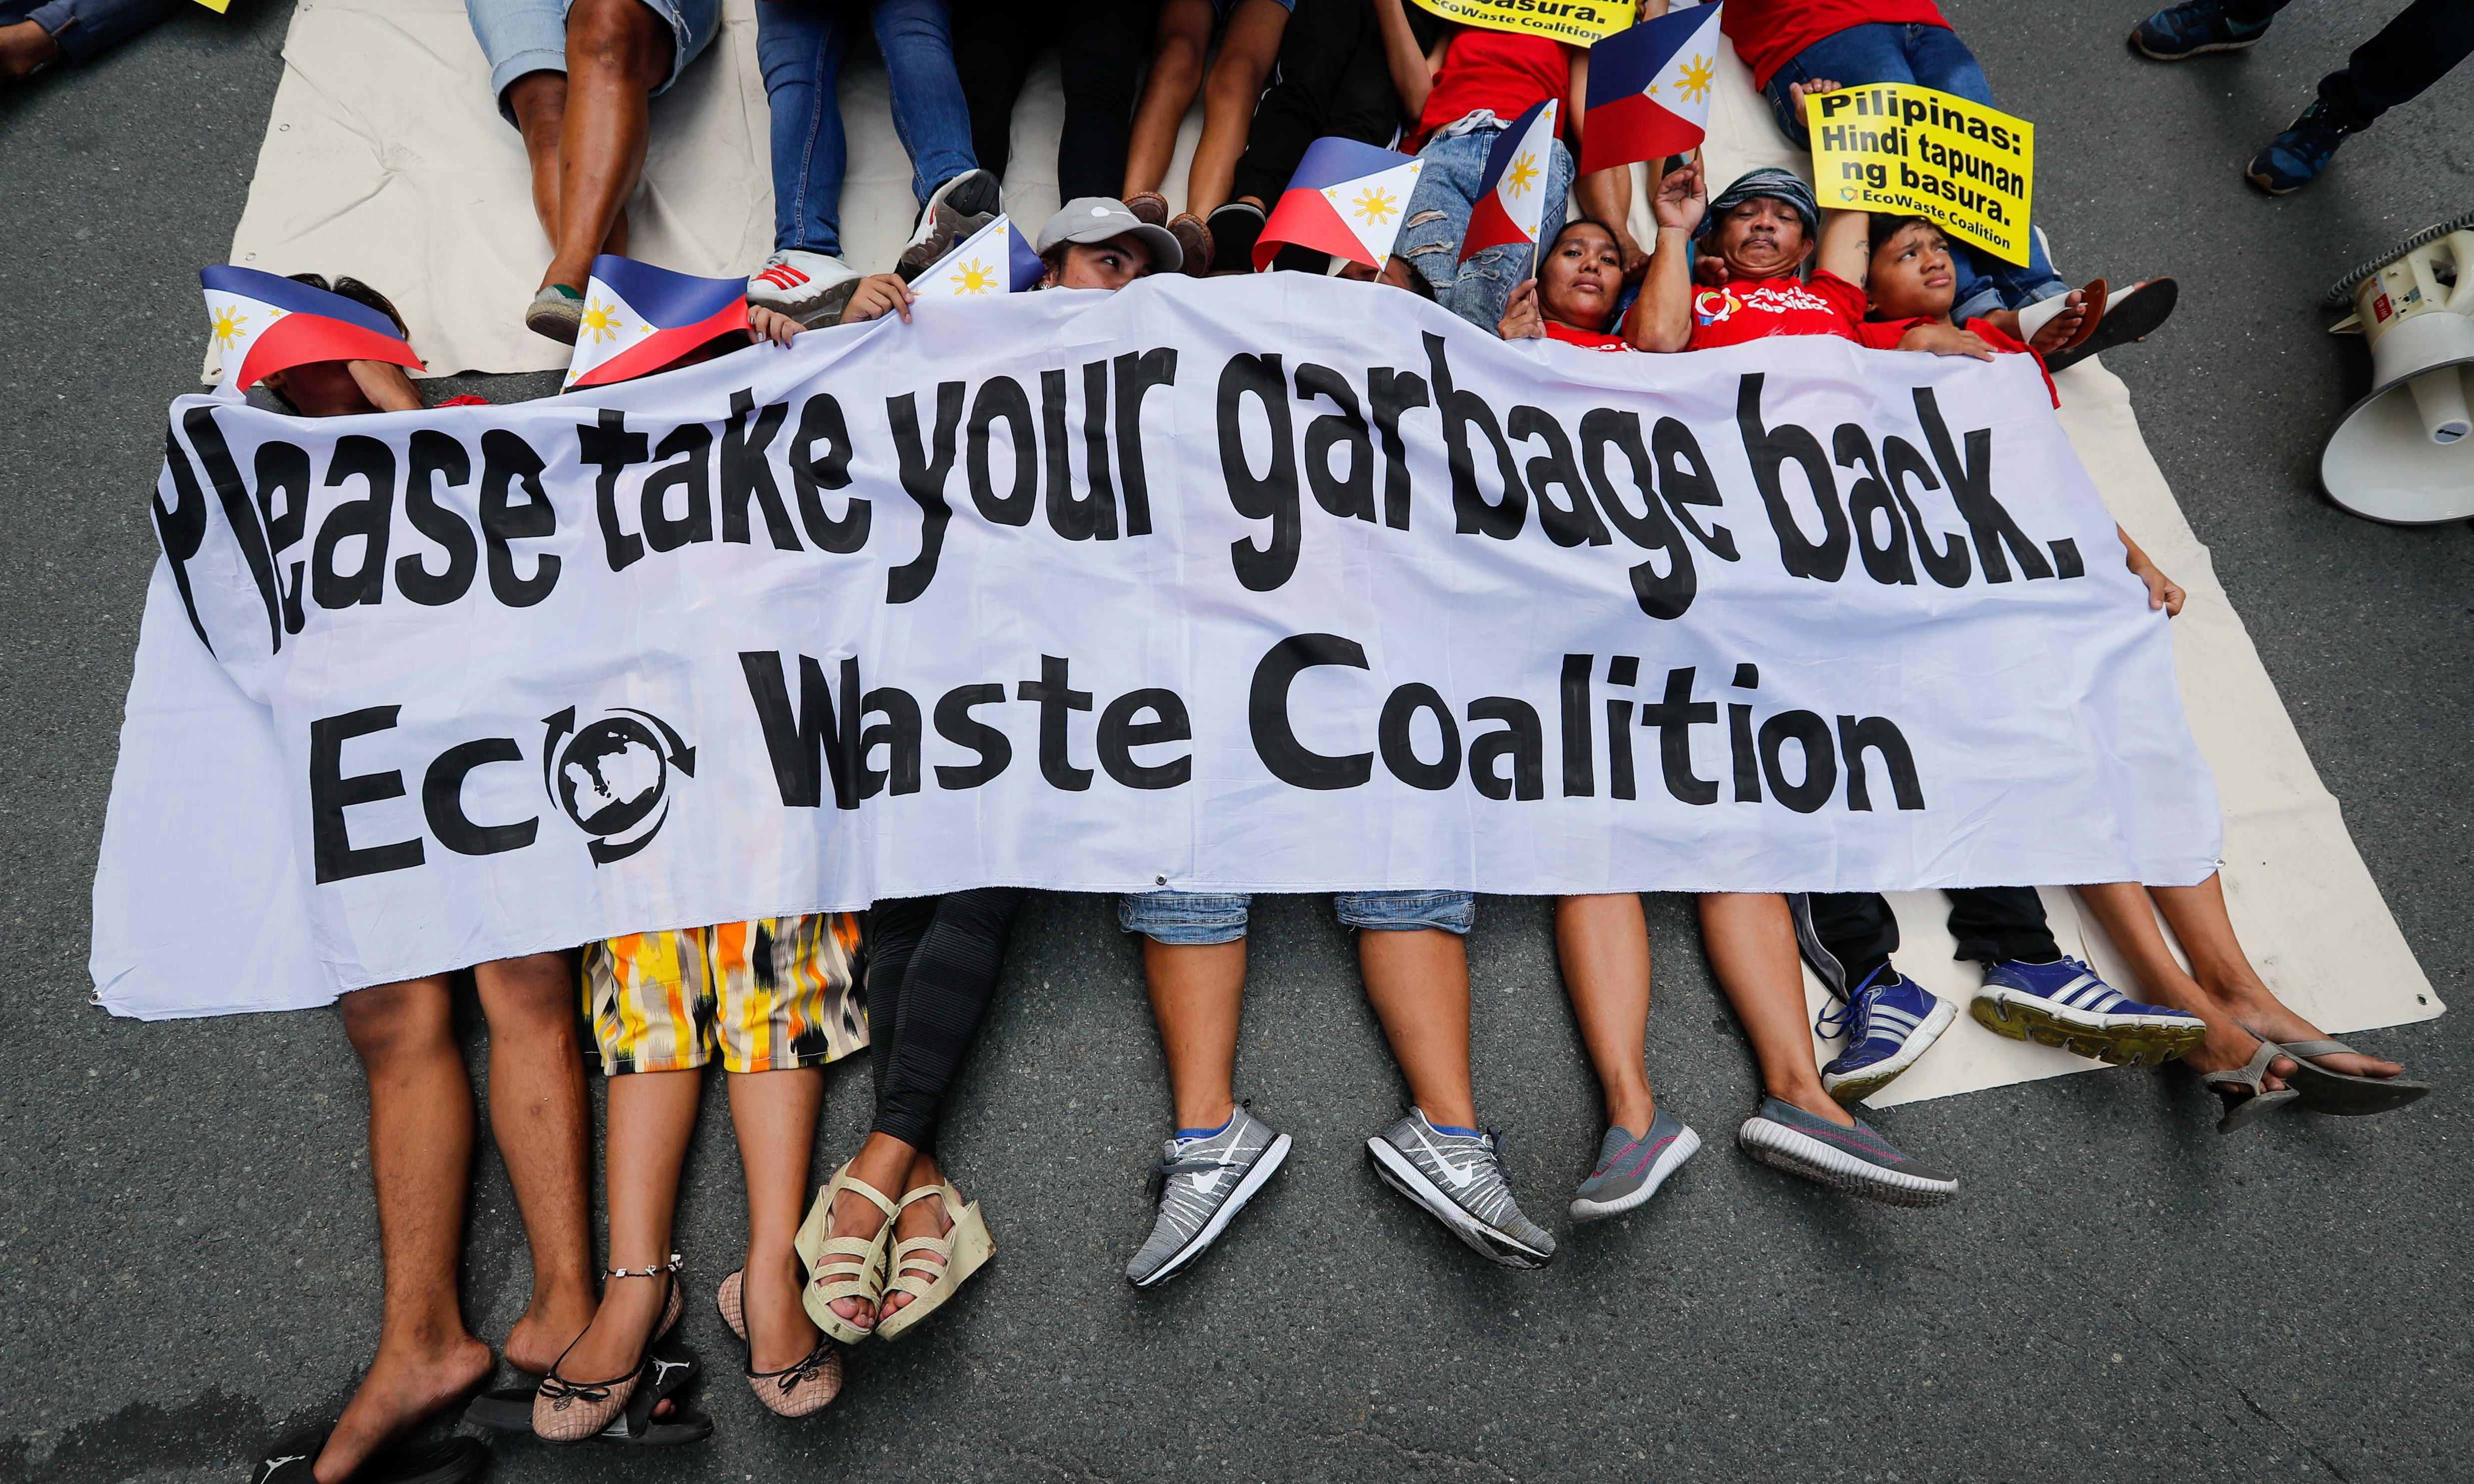 Philippines threatens to dump rubbish back in Canadian waters as row deepens